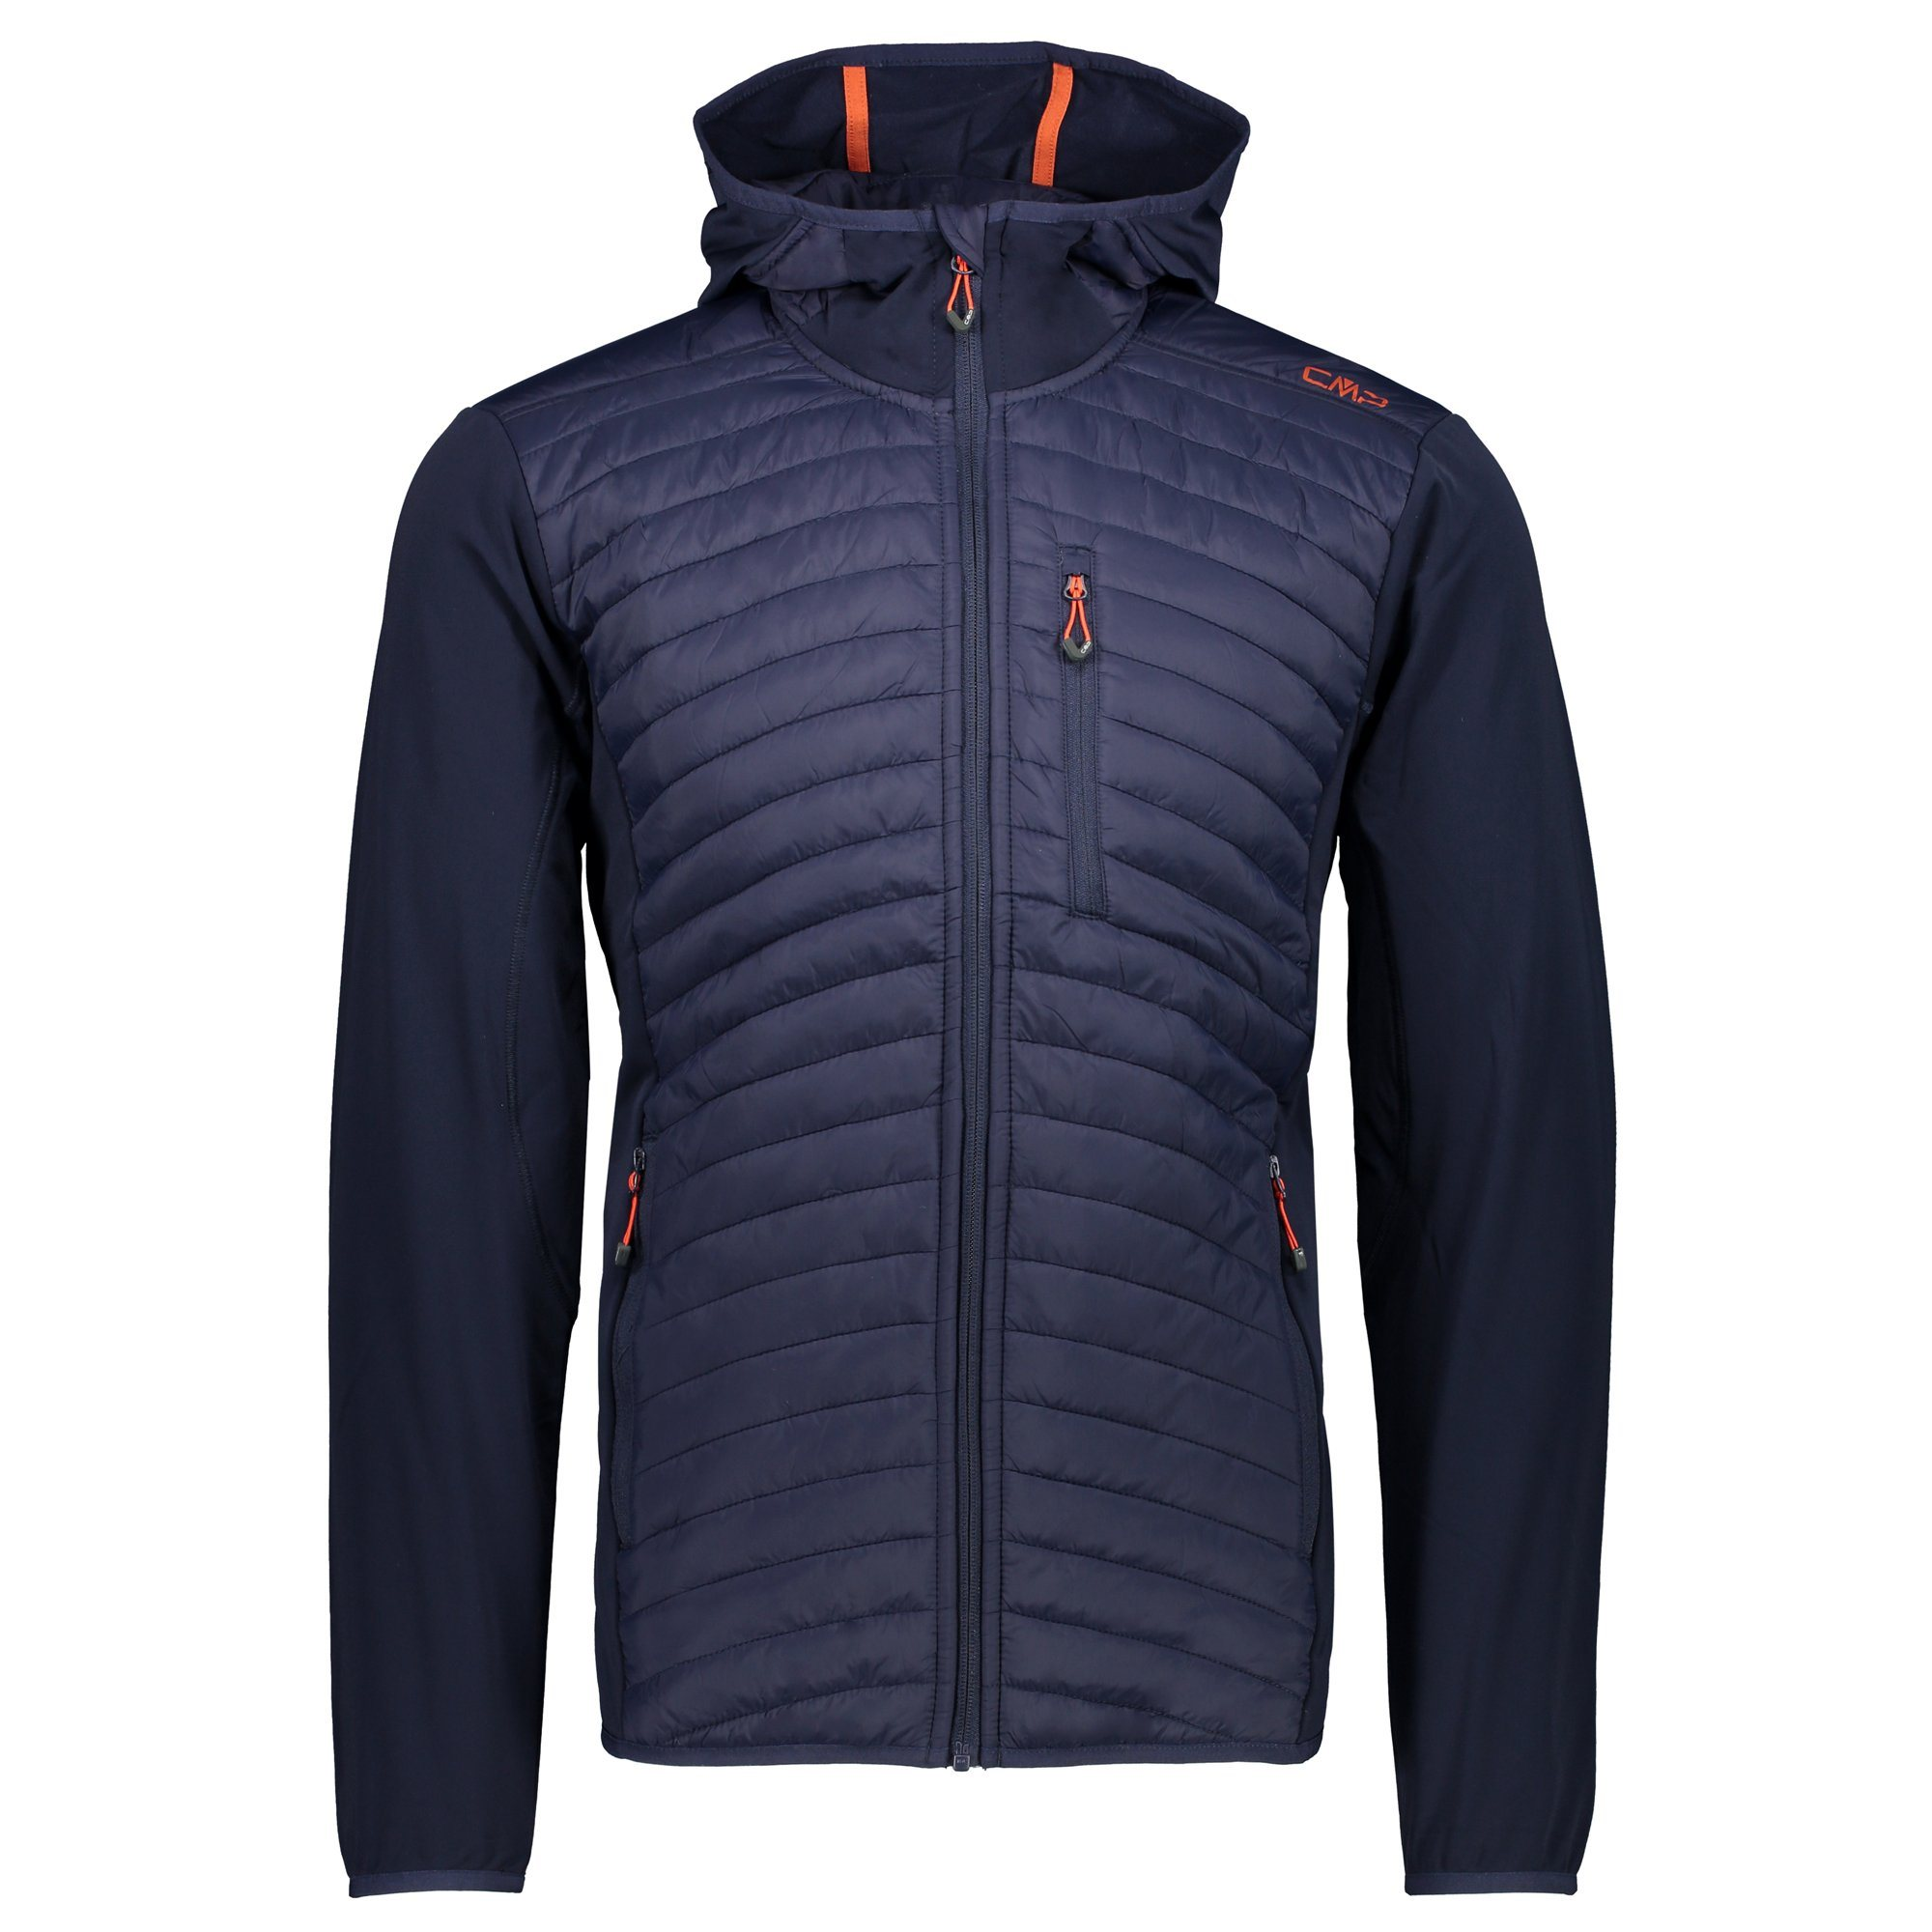 CMP Outdoorjacke | Sportbekleidung > Sportjacken > Outdoorjacken | CMP